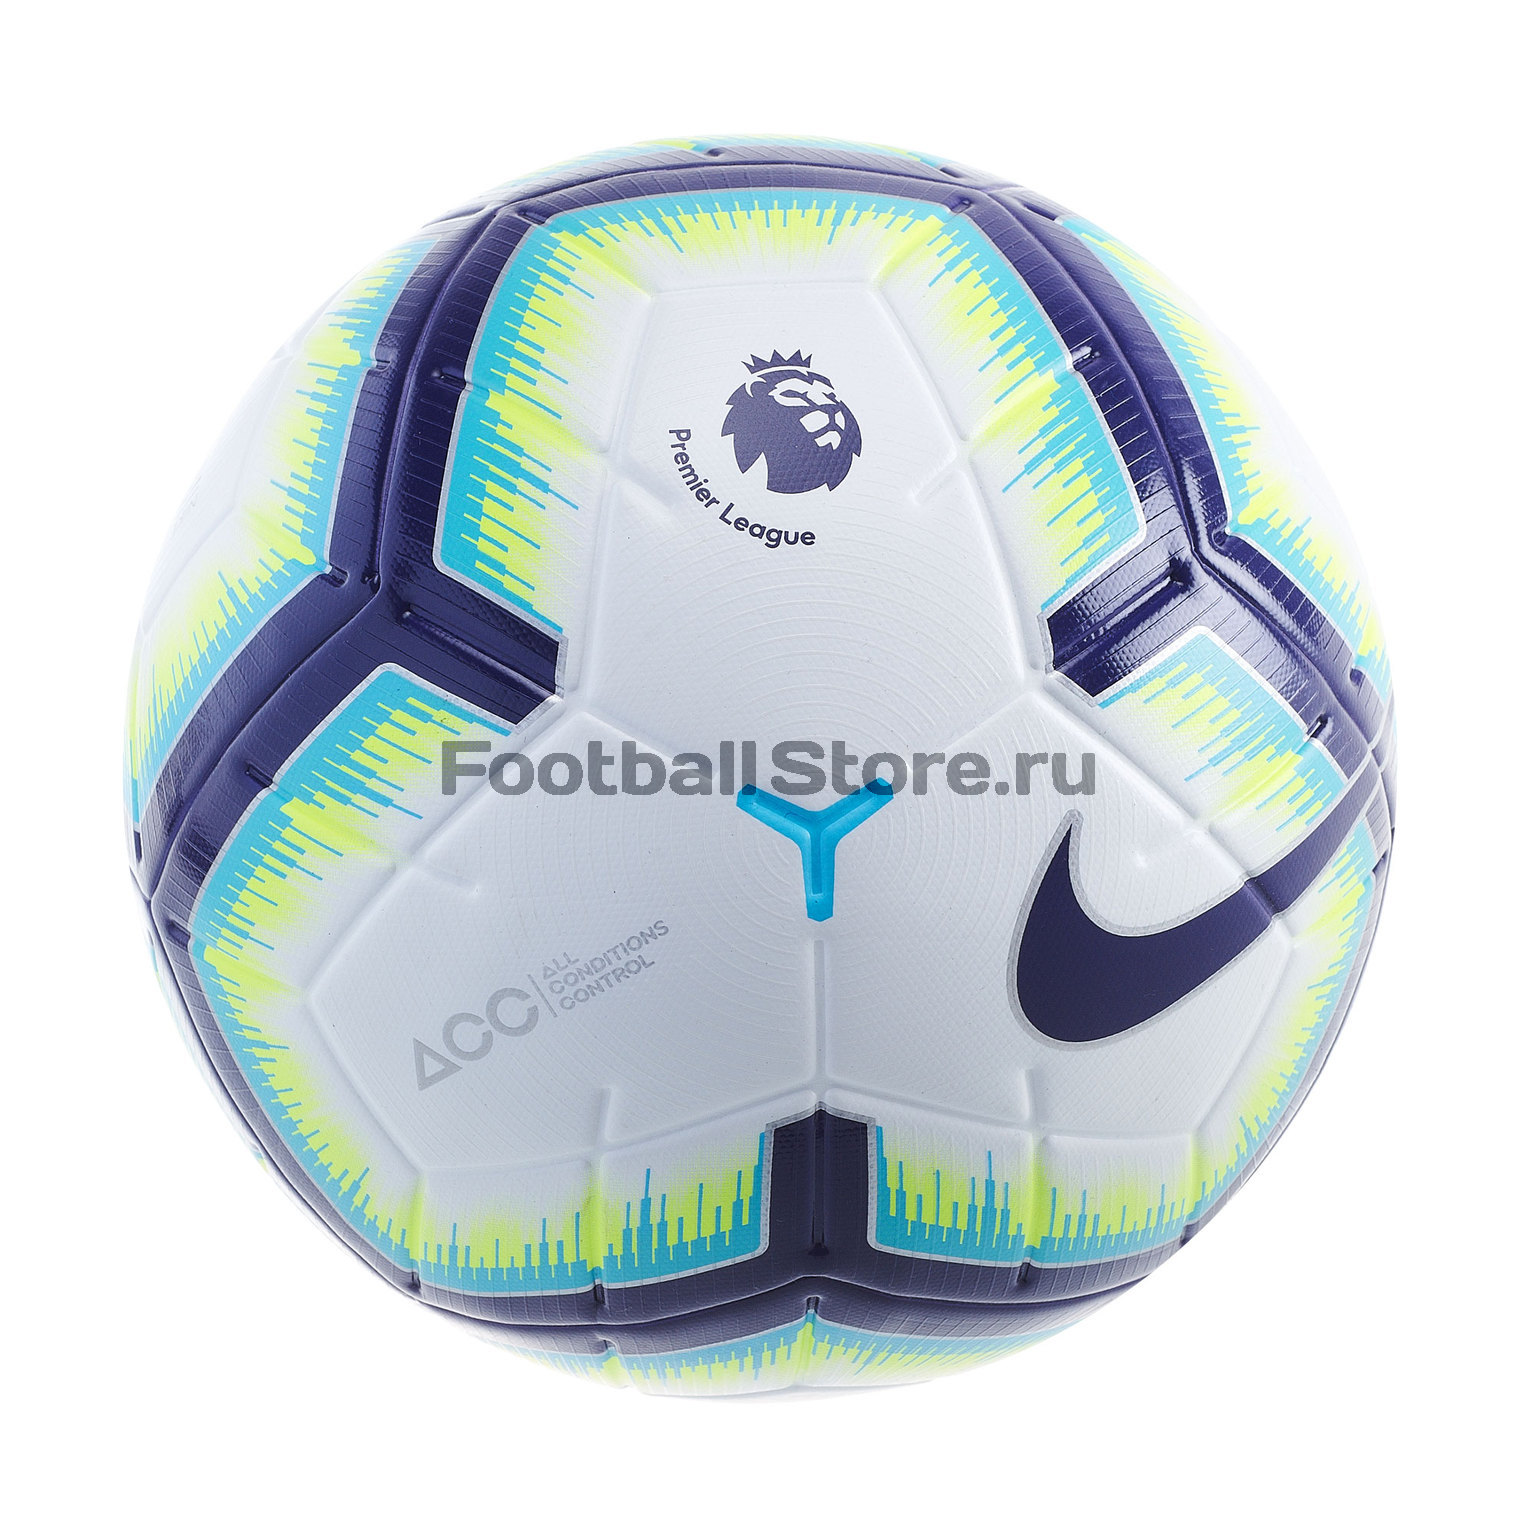 Футбольный мяч Nike Premier League Merlin SC3307-100 цена